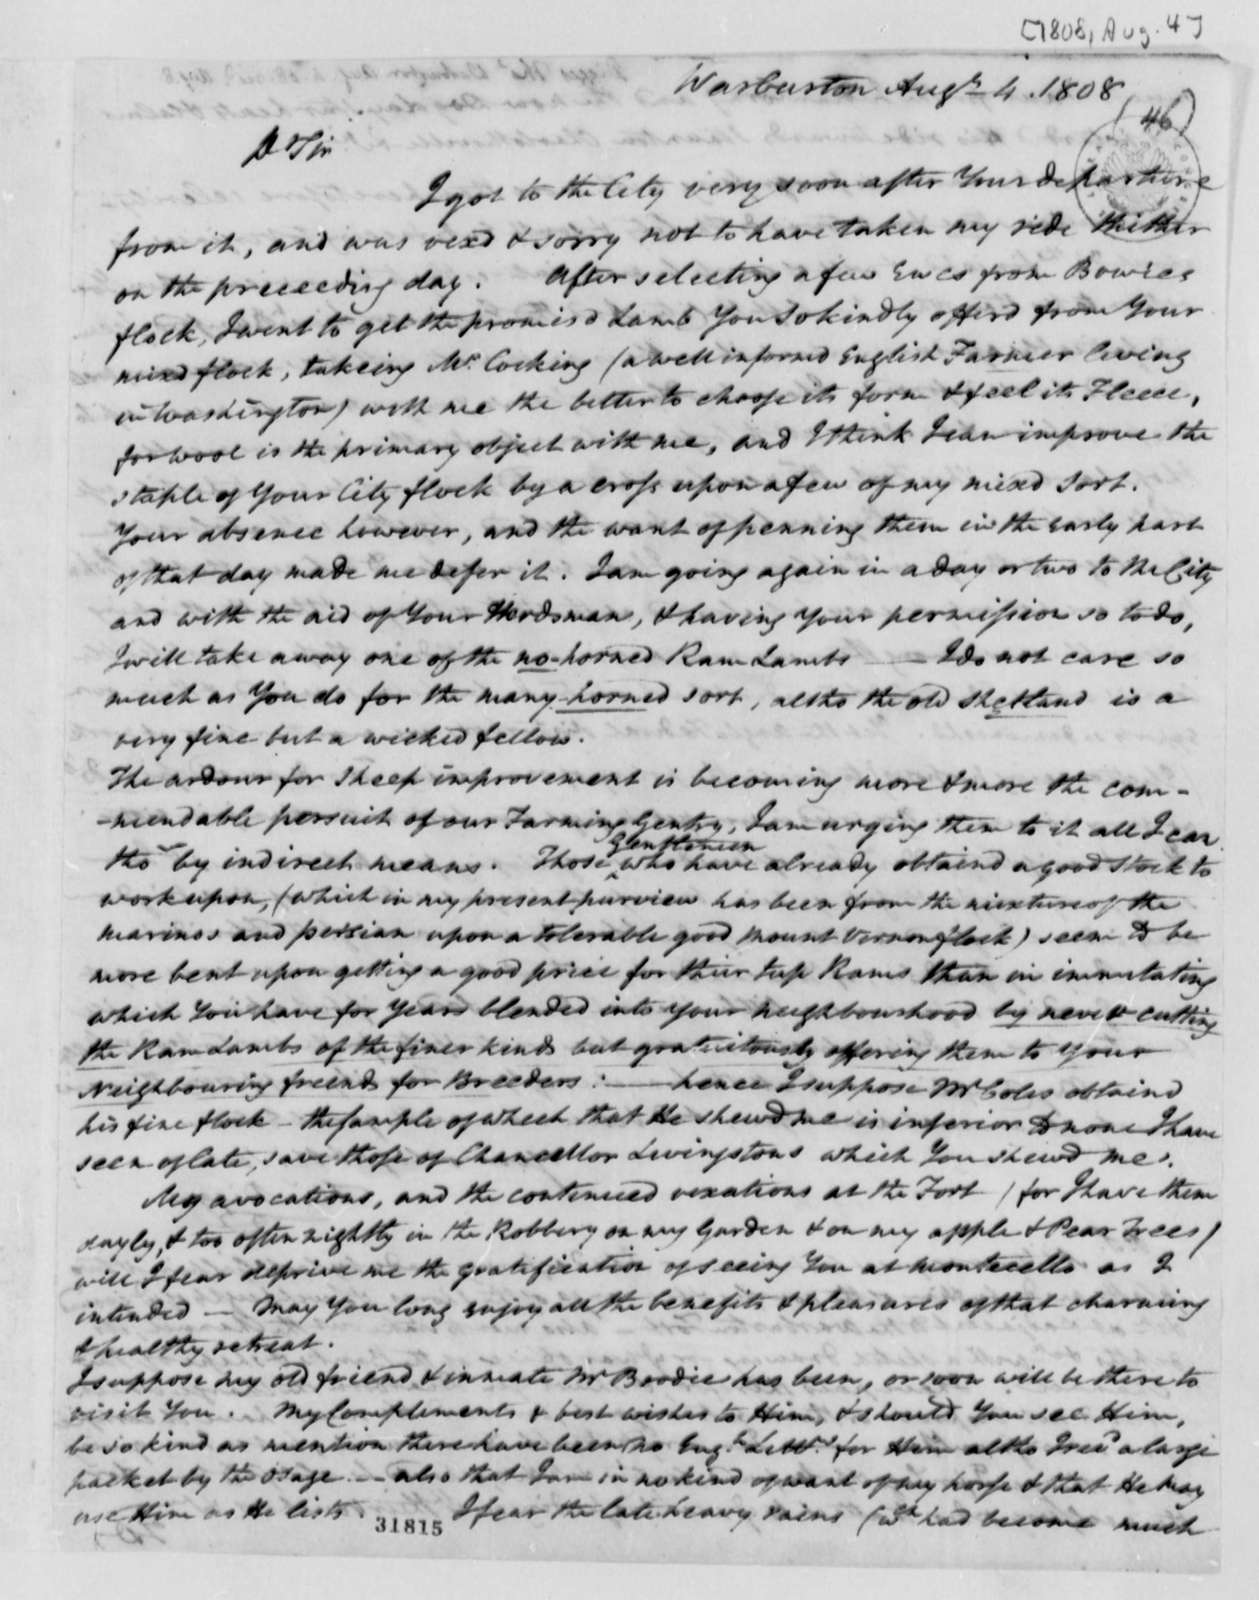 Thomas Digges to Thomas Jefferson, August 4, 1808